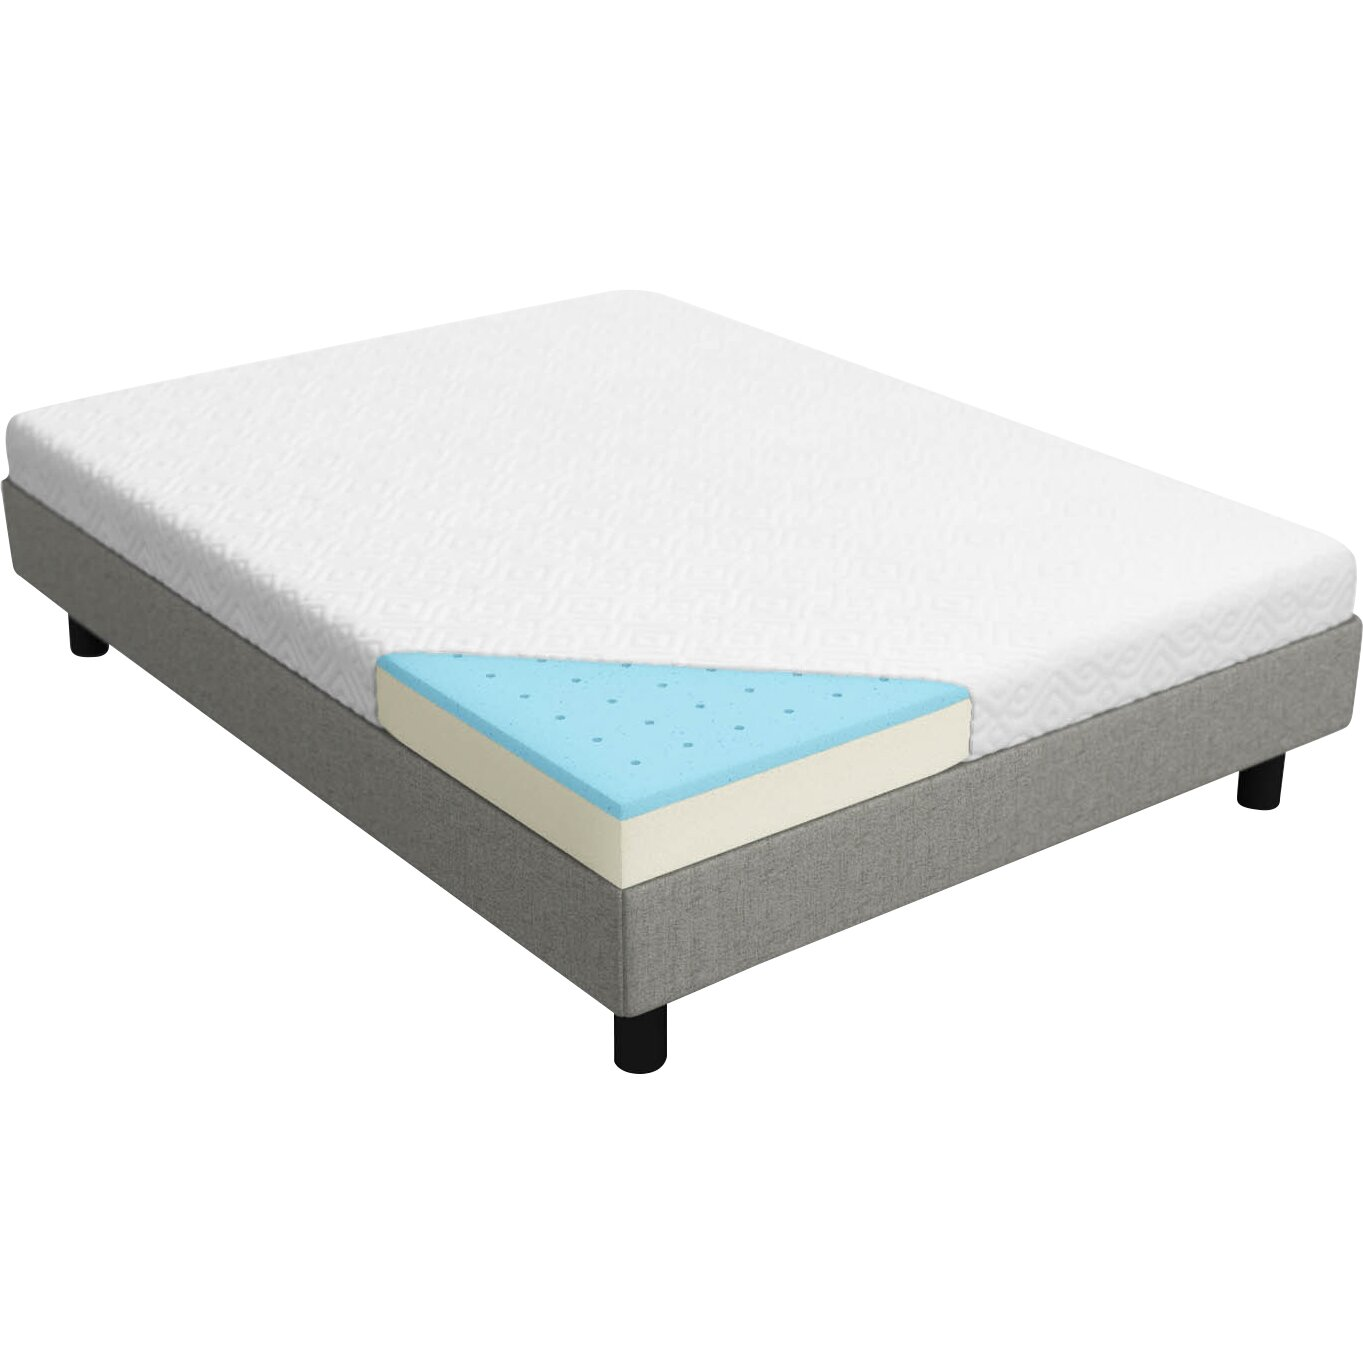 Lucid 5 gel memory foam mattress reviews Mattress sale memory foam